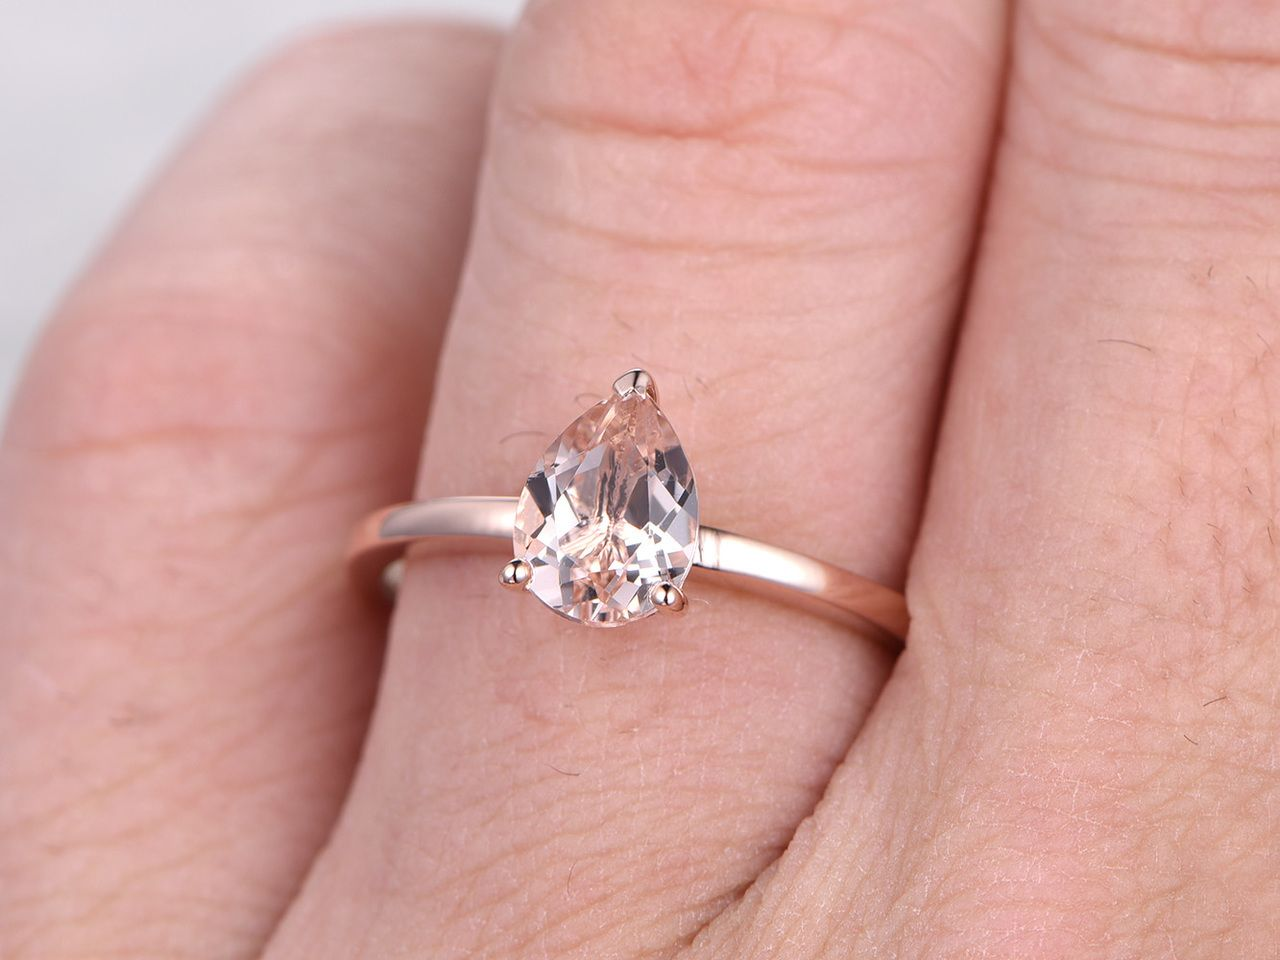 1 Carat Pear Shaped Morganite Engagement Ring Solitaire Promise Ring ...